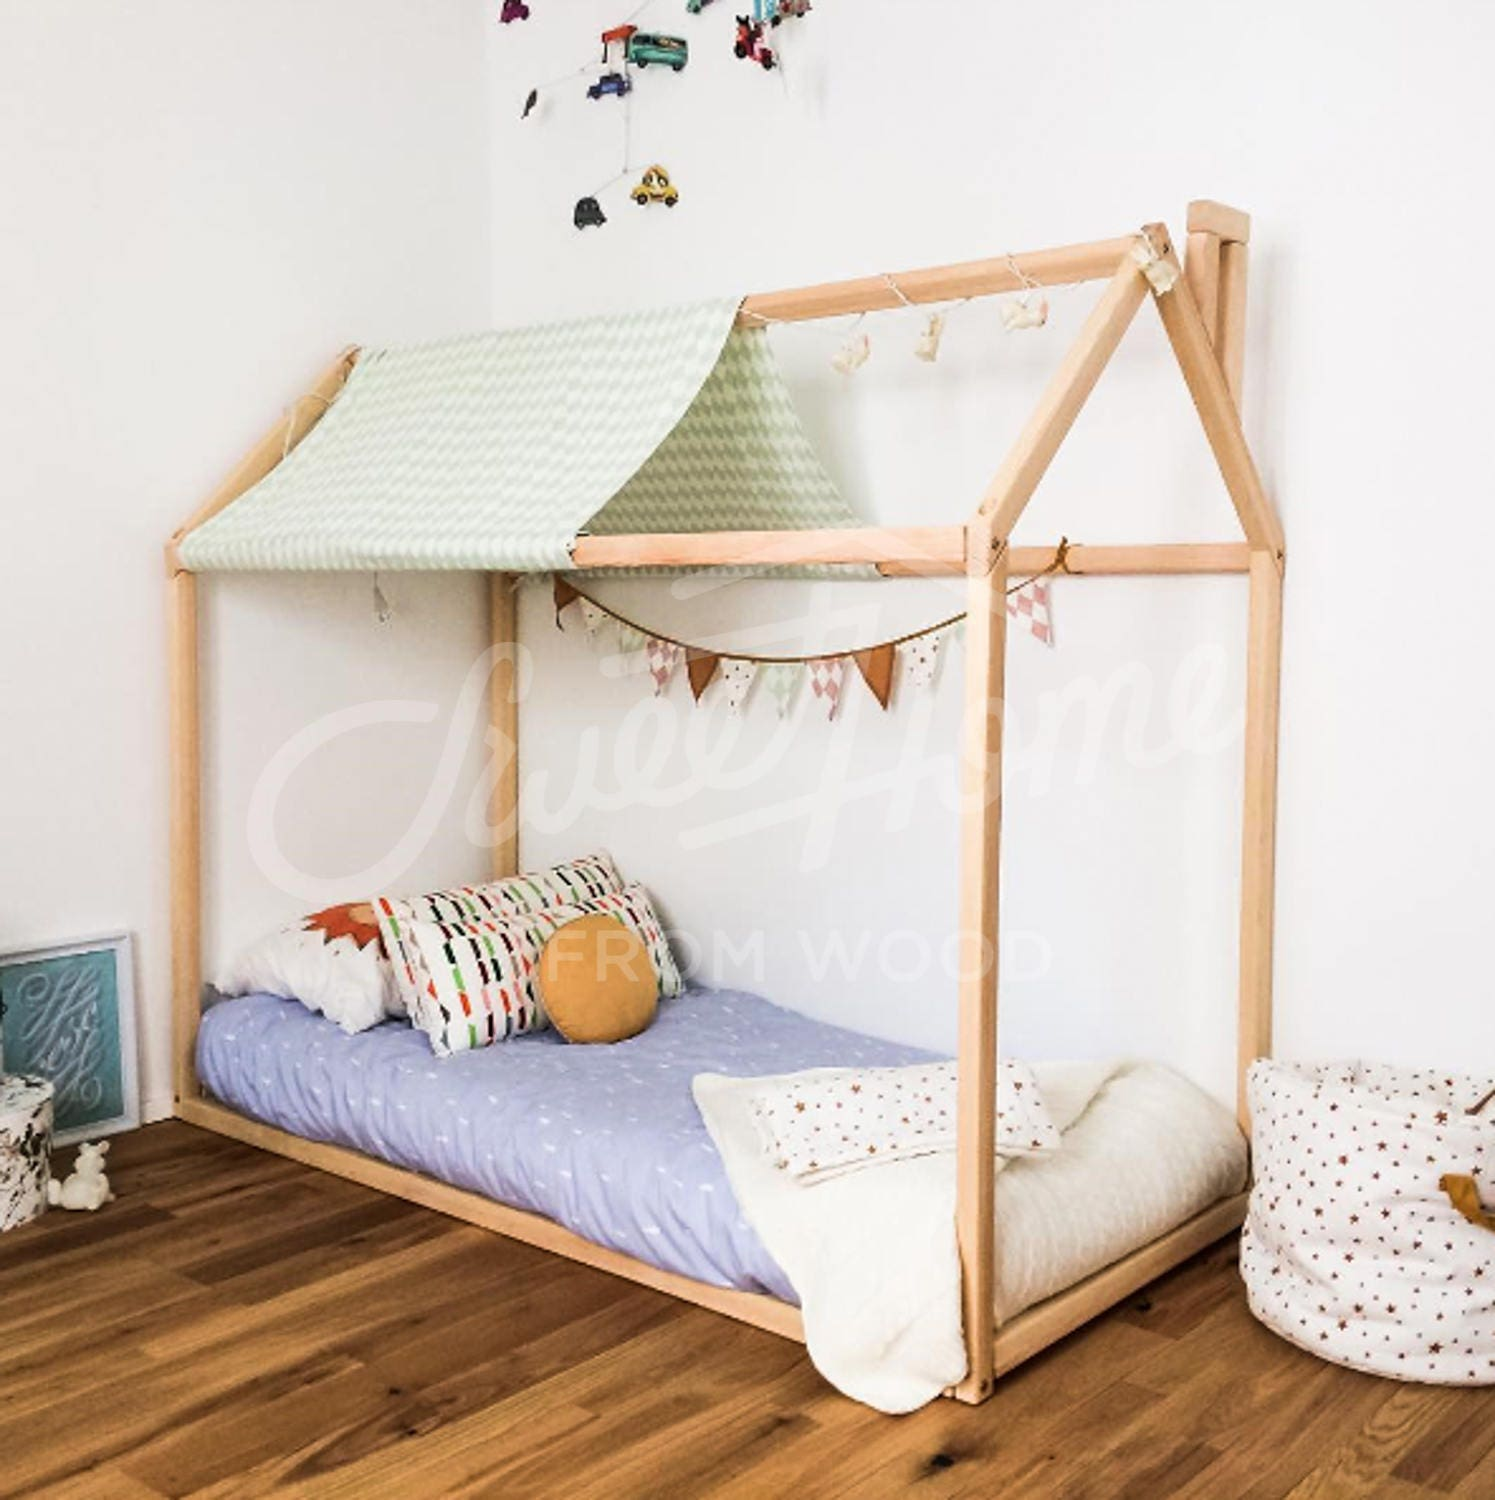 Toddler bed play house bed frame children bed bunk bed - Modern kinderbed ...